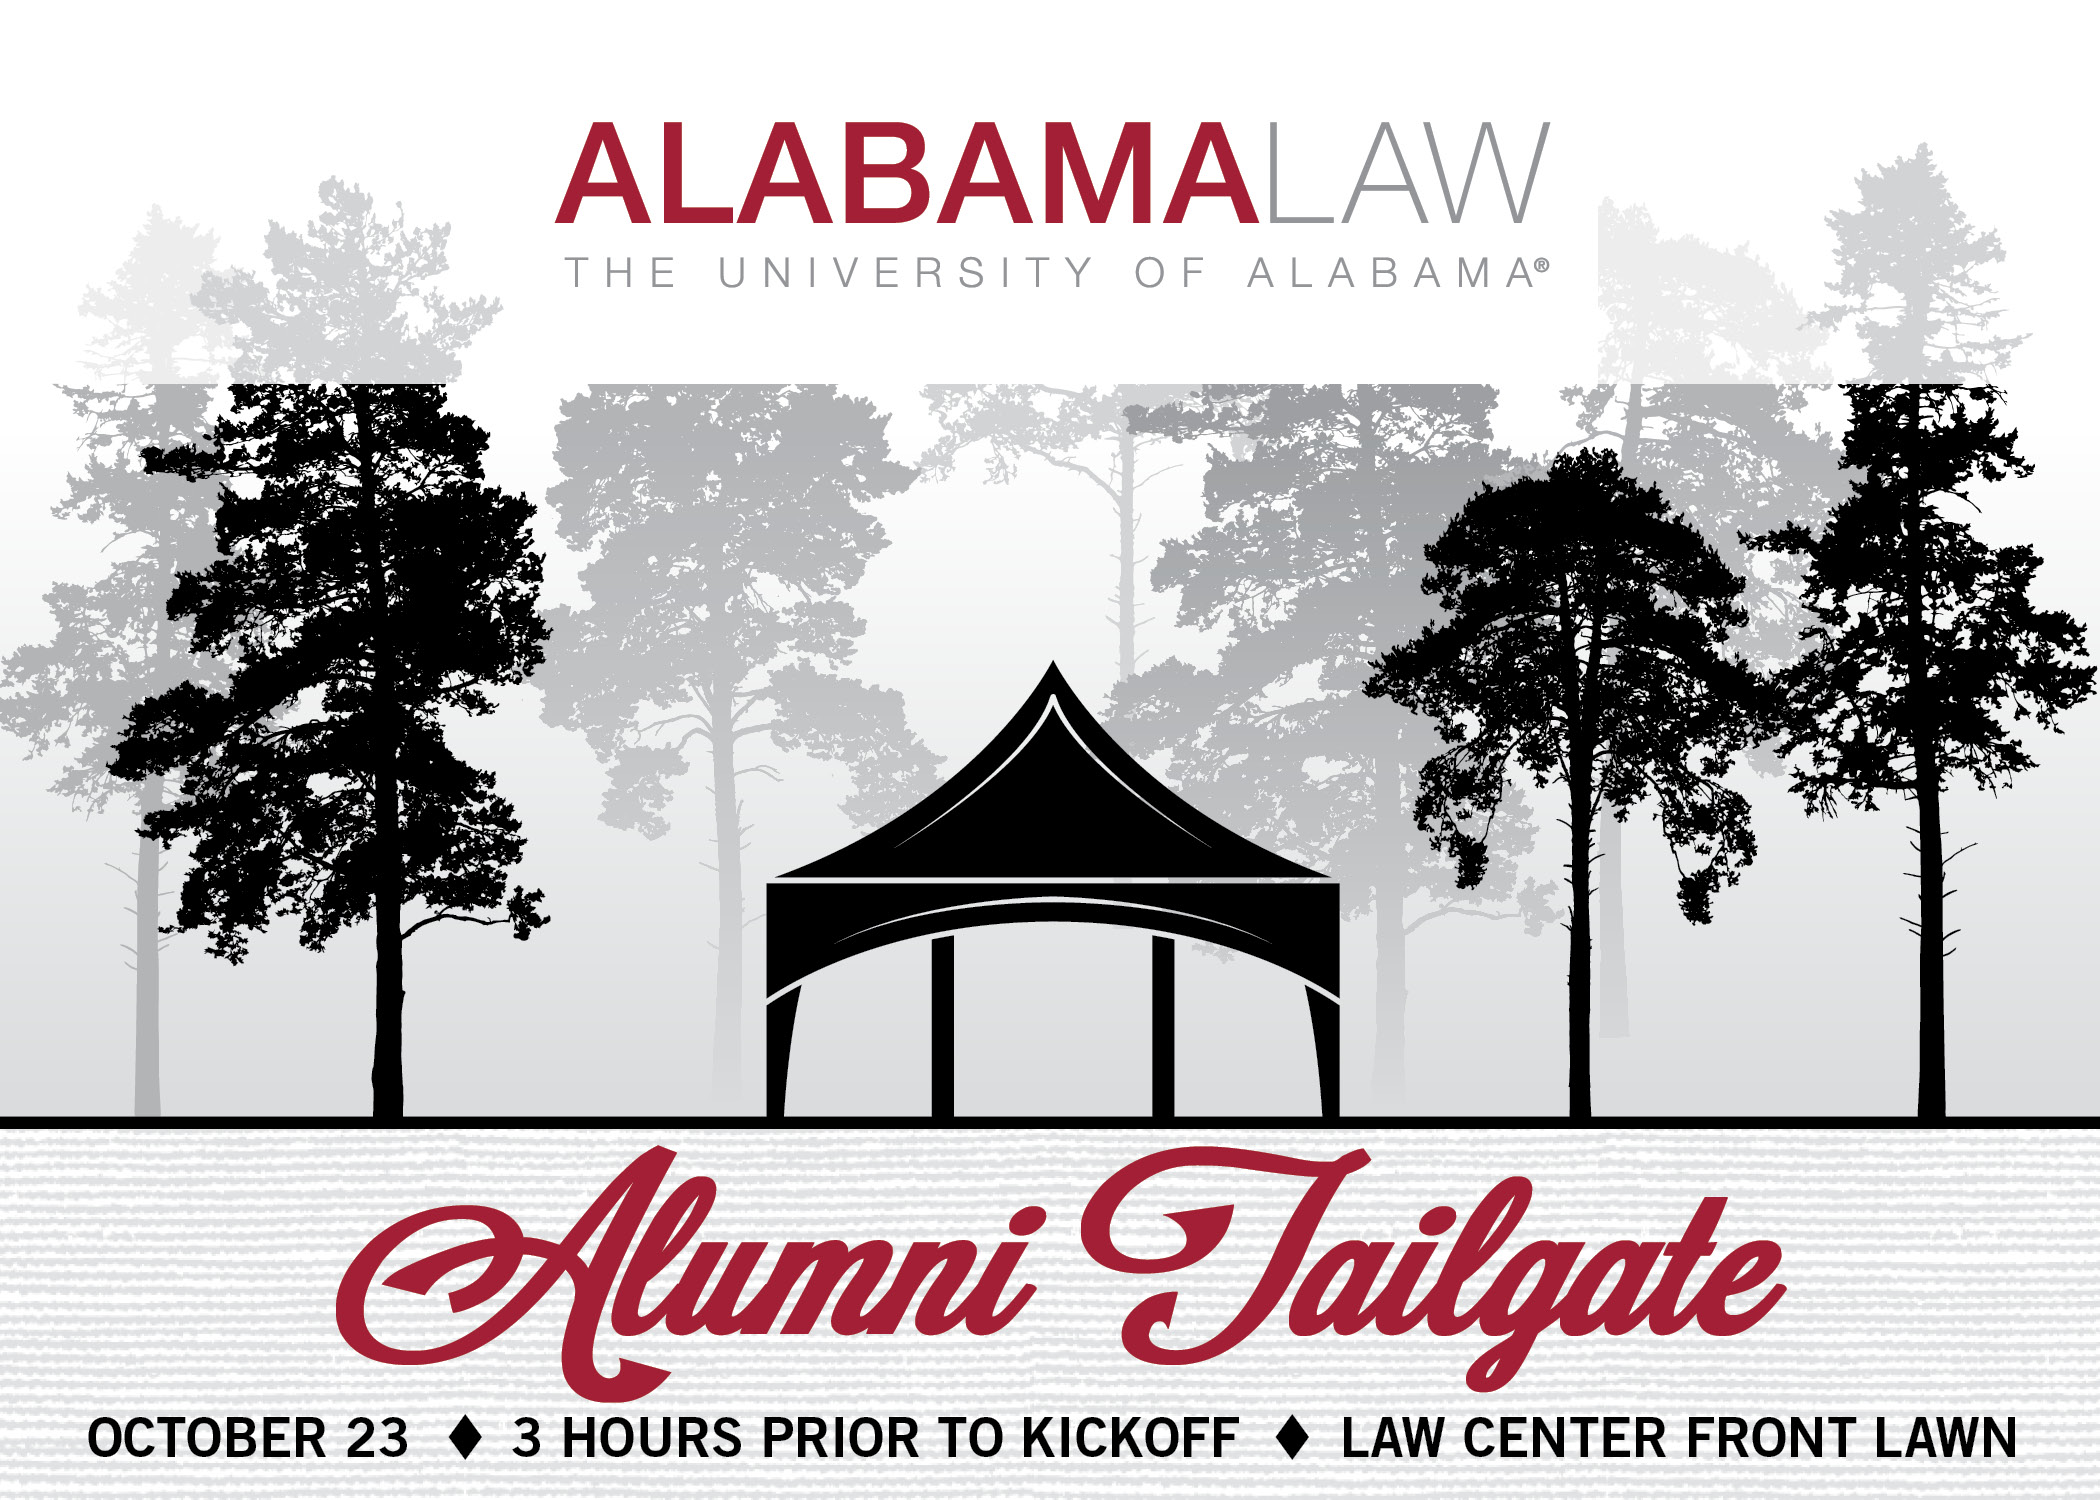 Alabama Law Alumni Tailgate: Homecoming 2021. October 23 3 hours before kickoff on the Law School front lawn.